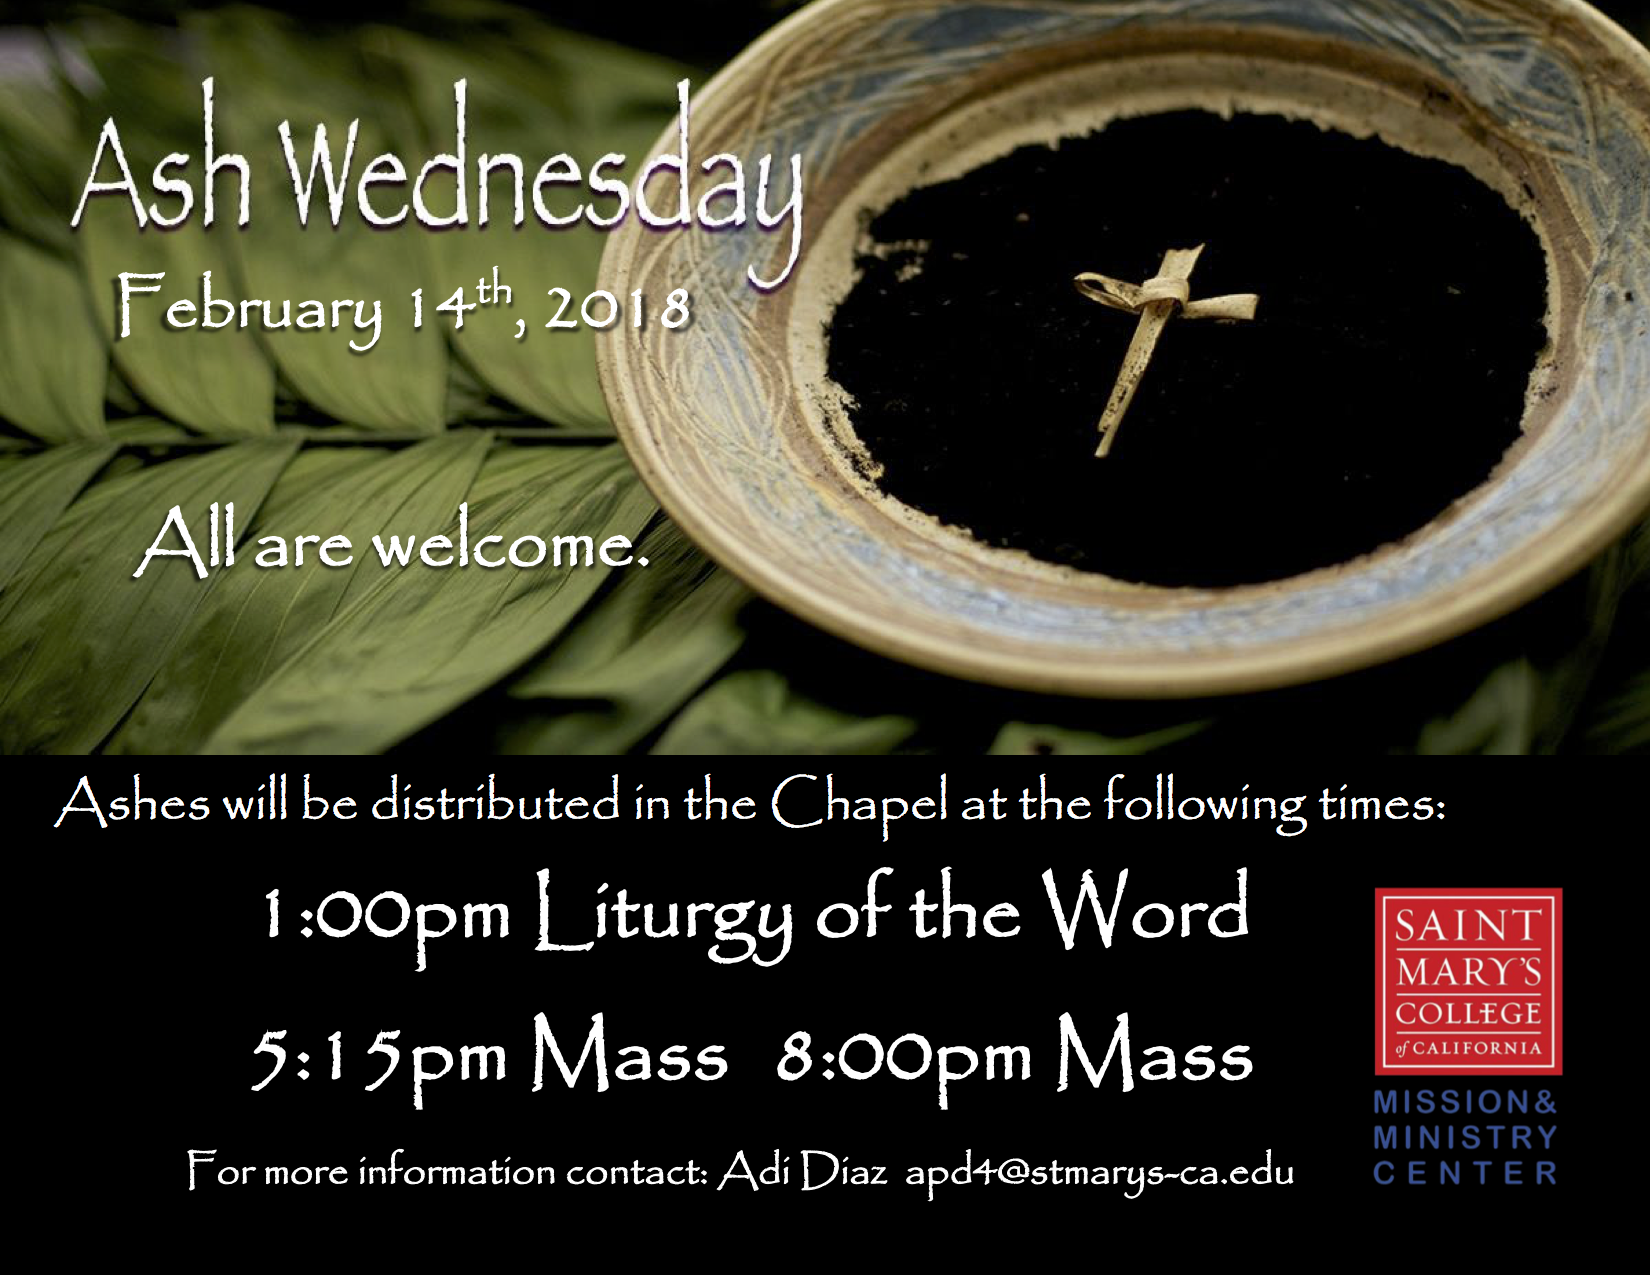 Ash Wednesday flyer